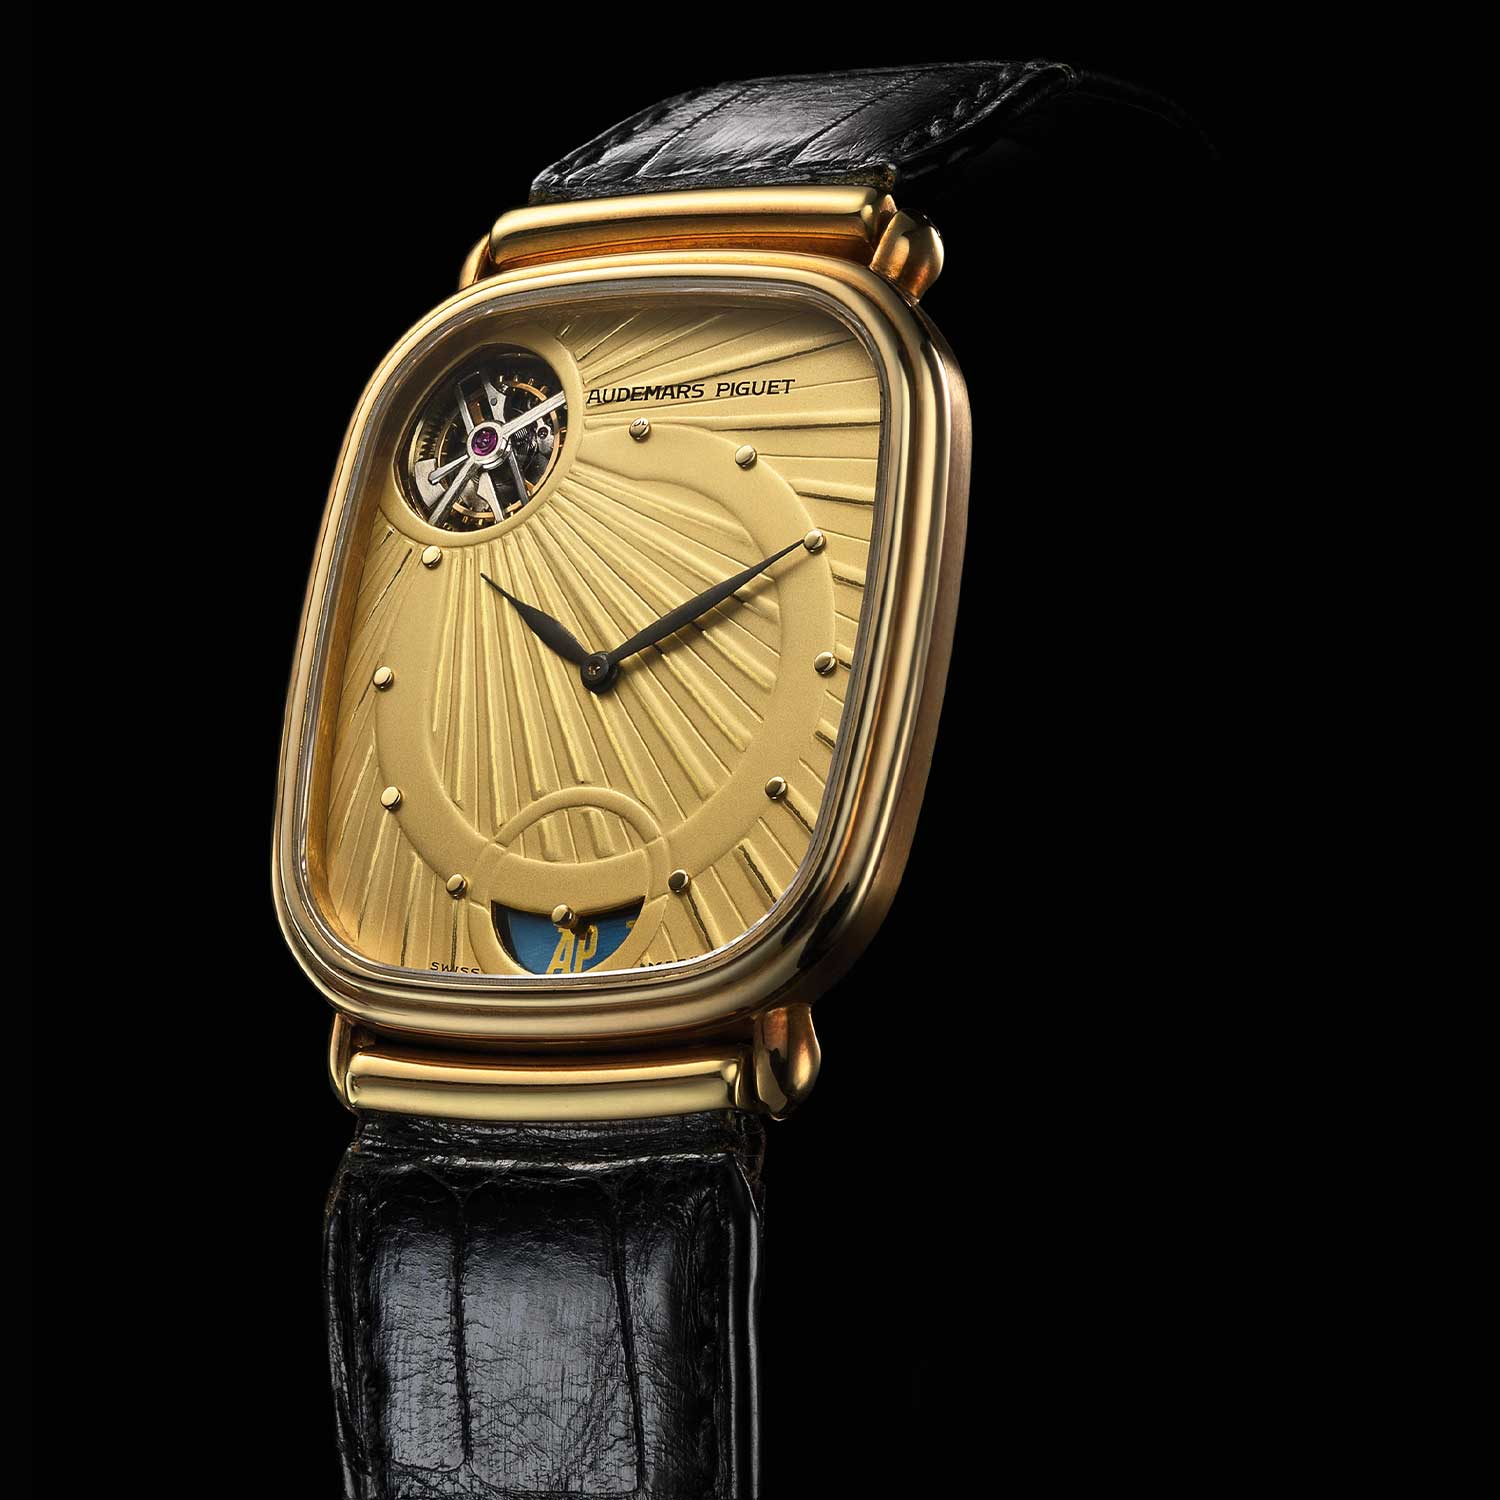 Selfwinding tourbillon. 18-carat yellow gold case No 296. Calibre 2870. Model 25643BA with lug bar cover. Watch sold in 1990. Audemars Piguet Heritage Collection, Inv. 1057.